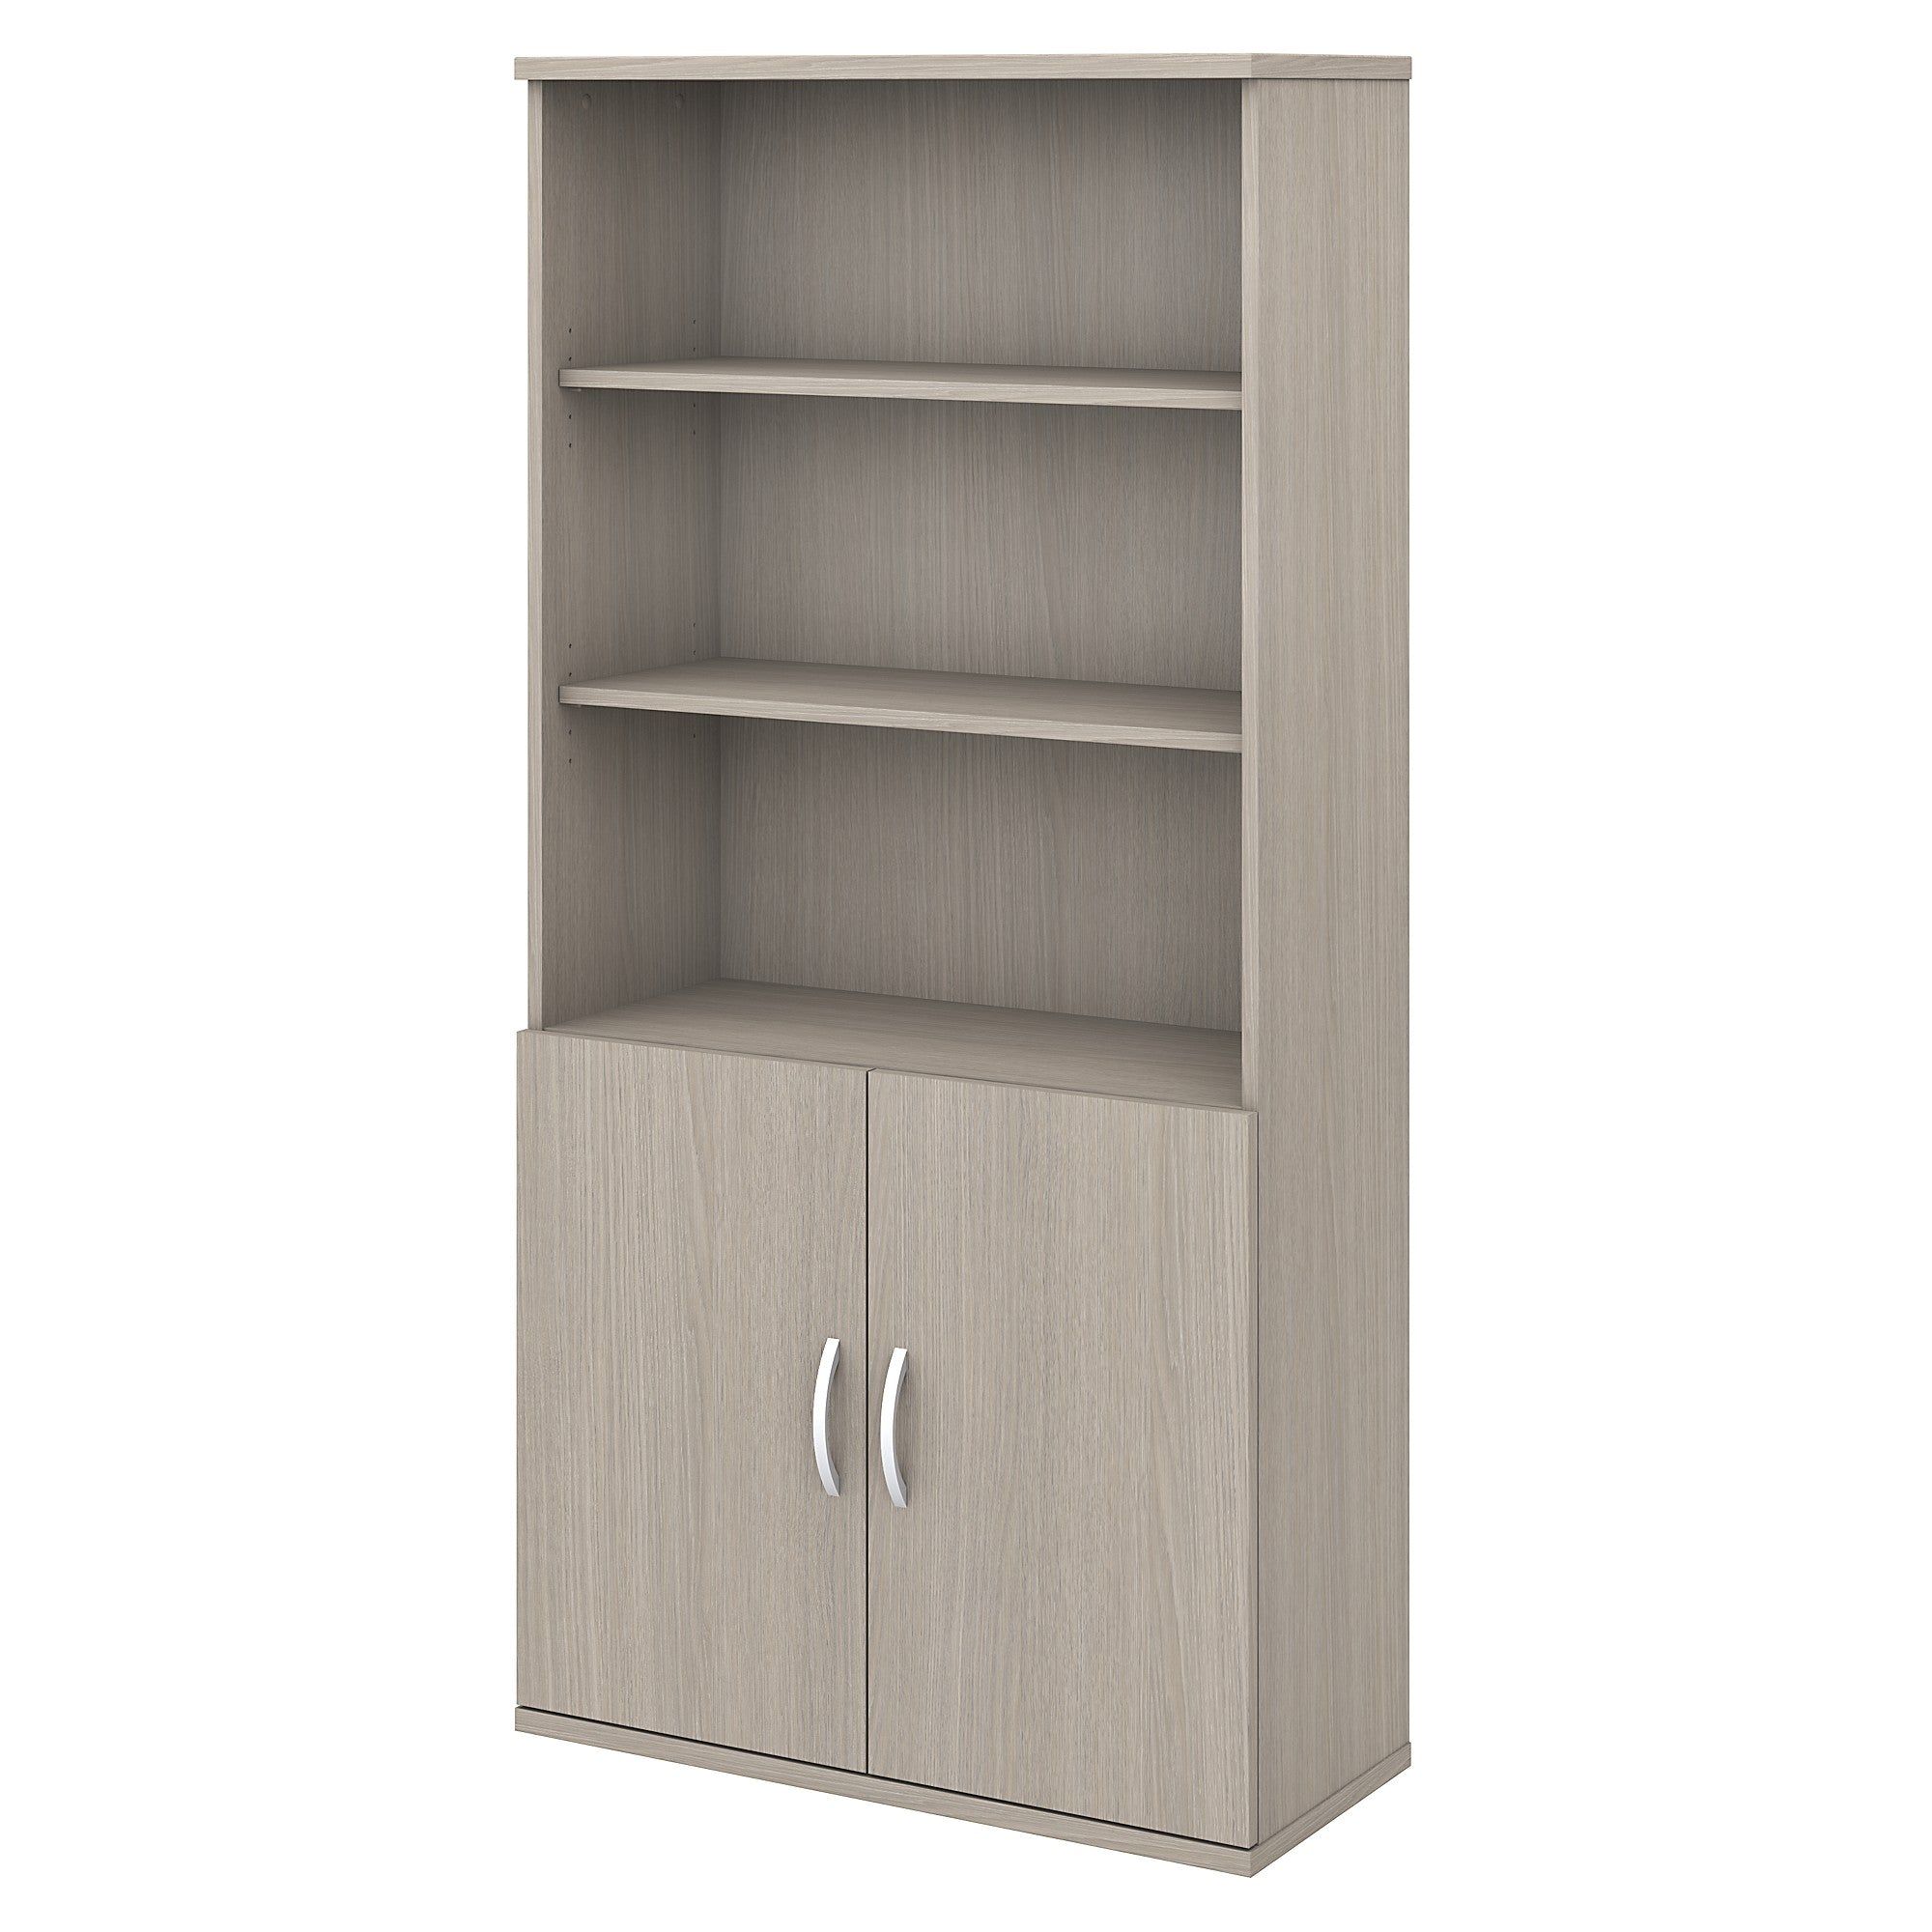 Studio C 5 Shelf Bookcase with Doors -Sand Oak